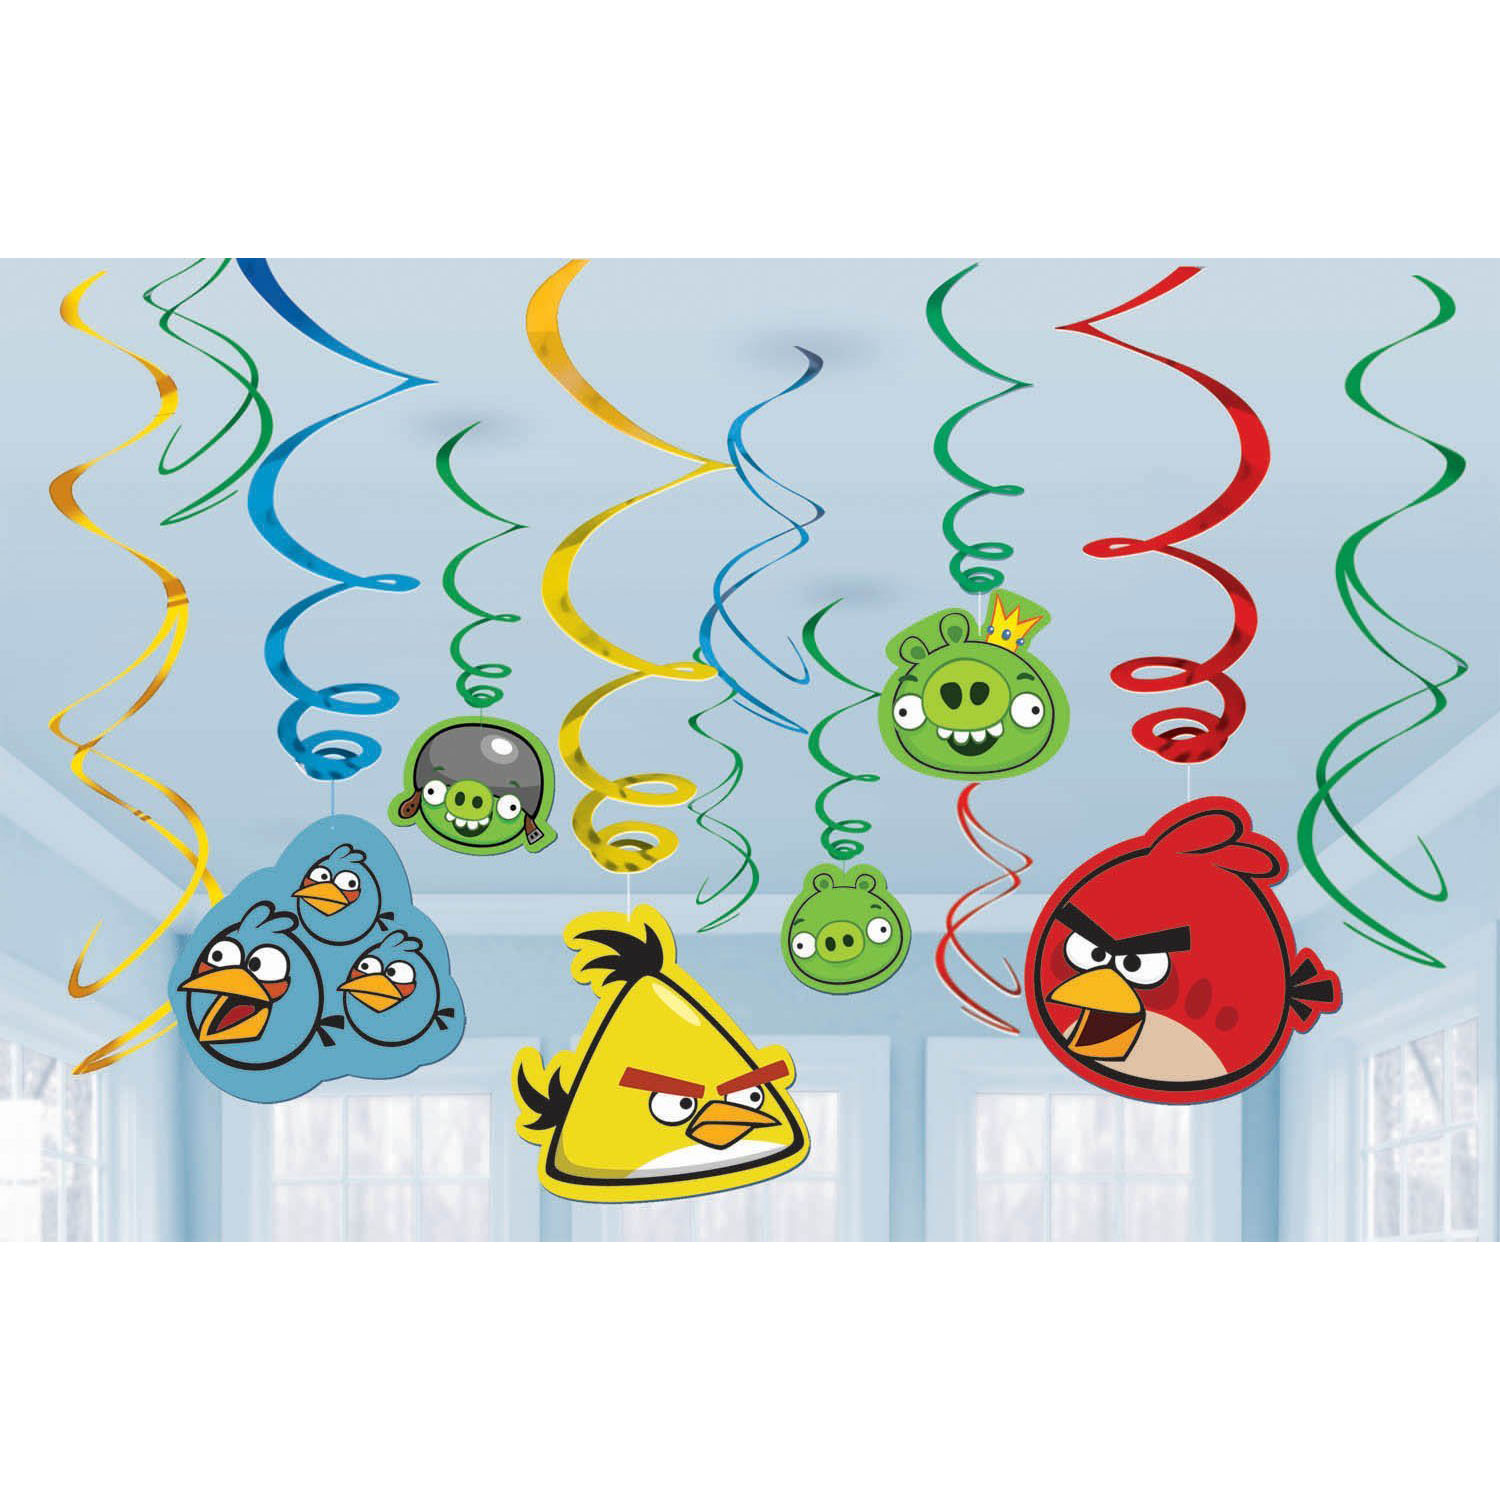 Angry birds party supplies swirl decorations at toystop for Angry birds birthday party decoration ideas